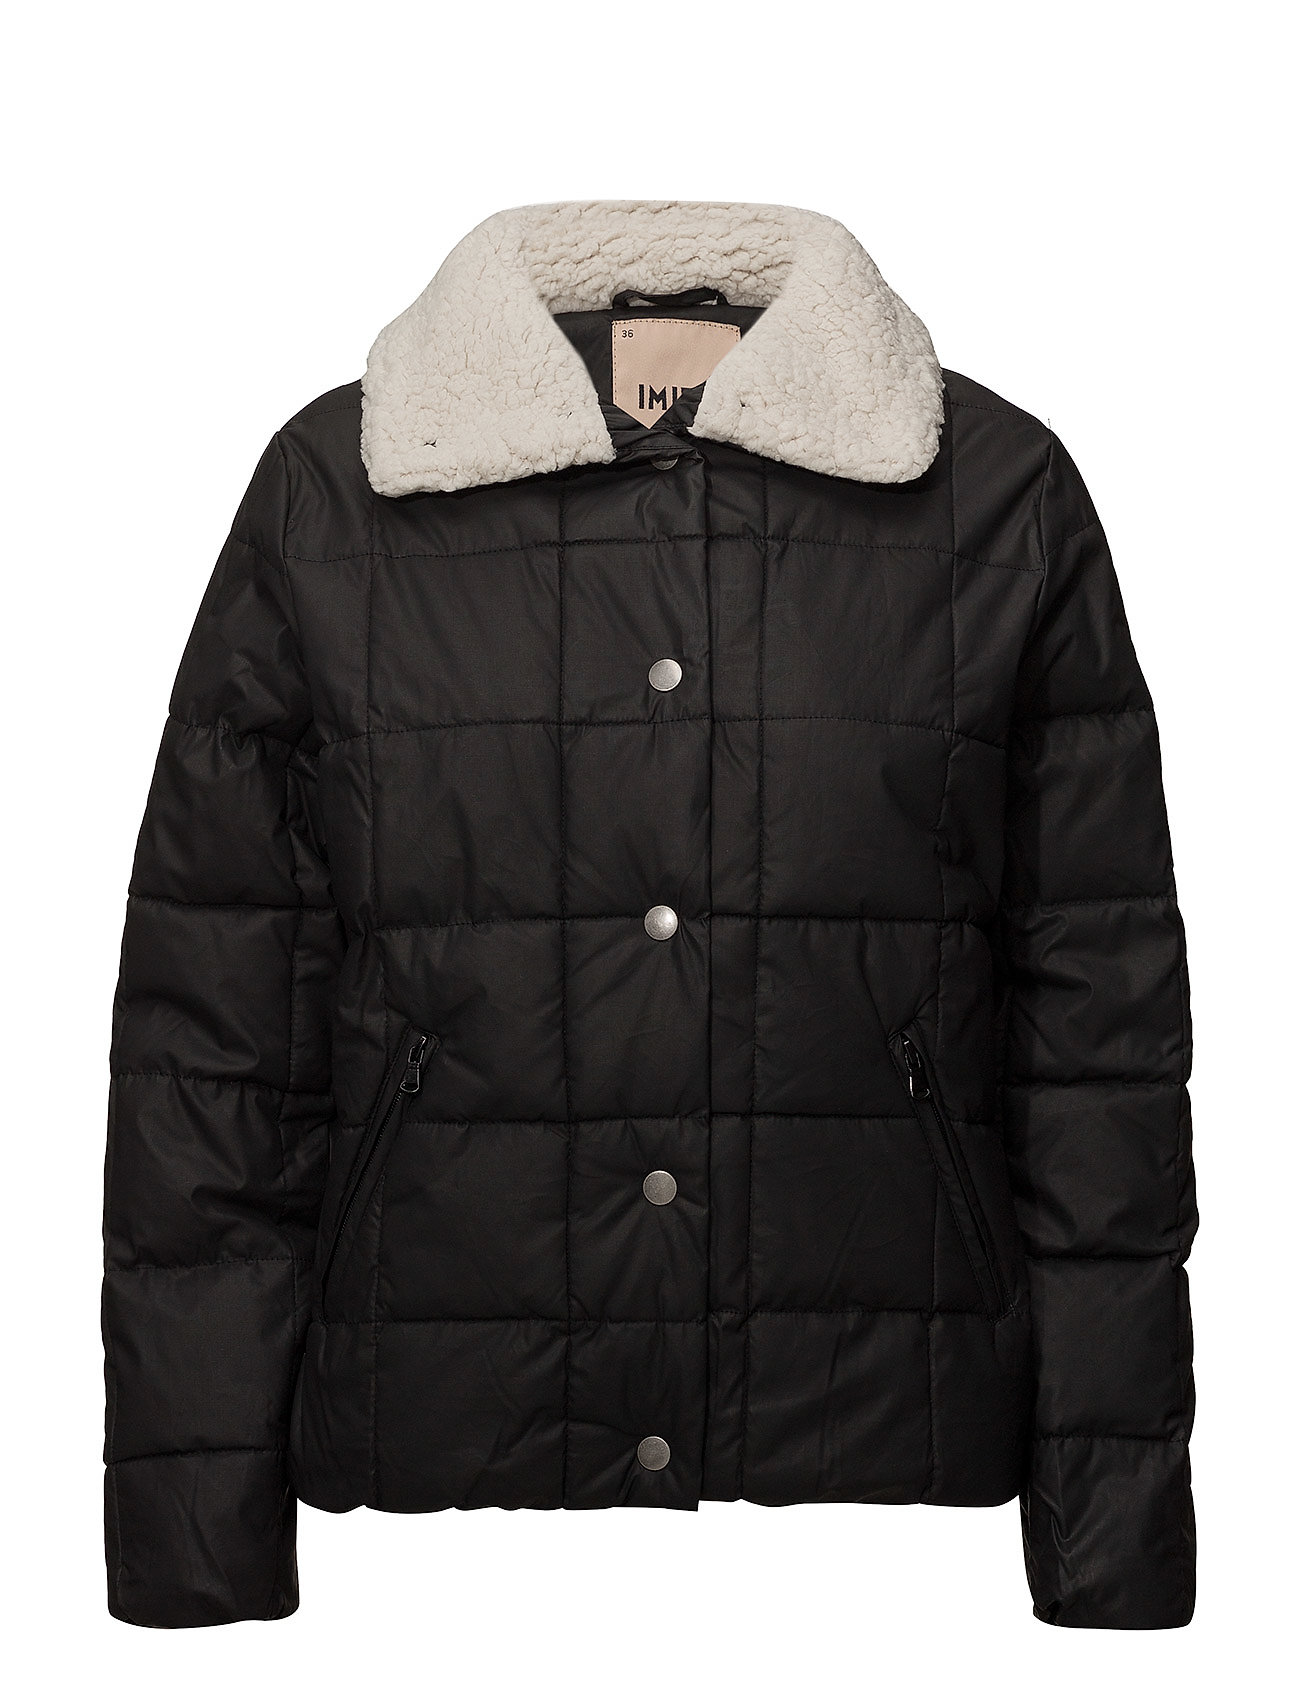 Imitz Jacket Outerwear Heavy - BLACK